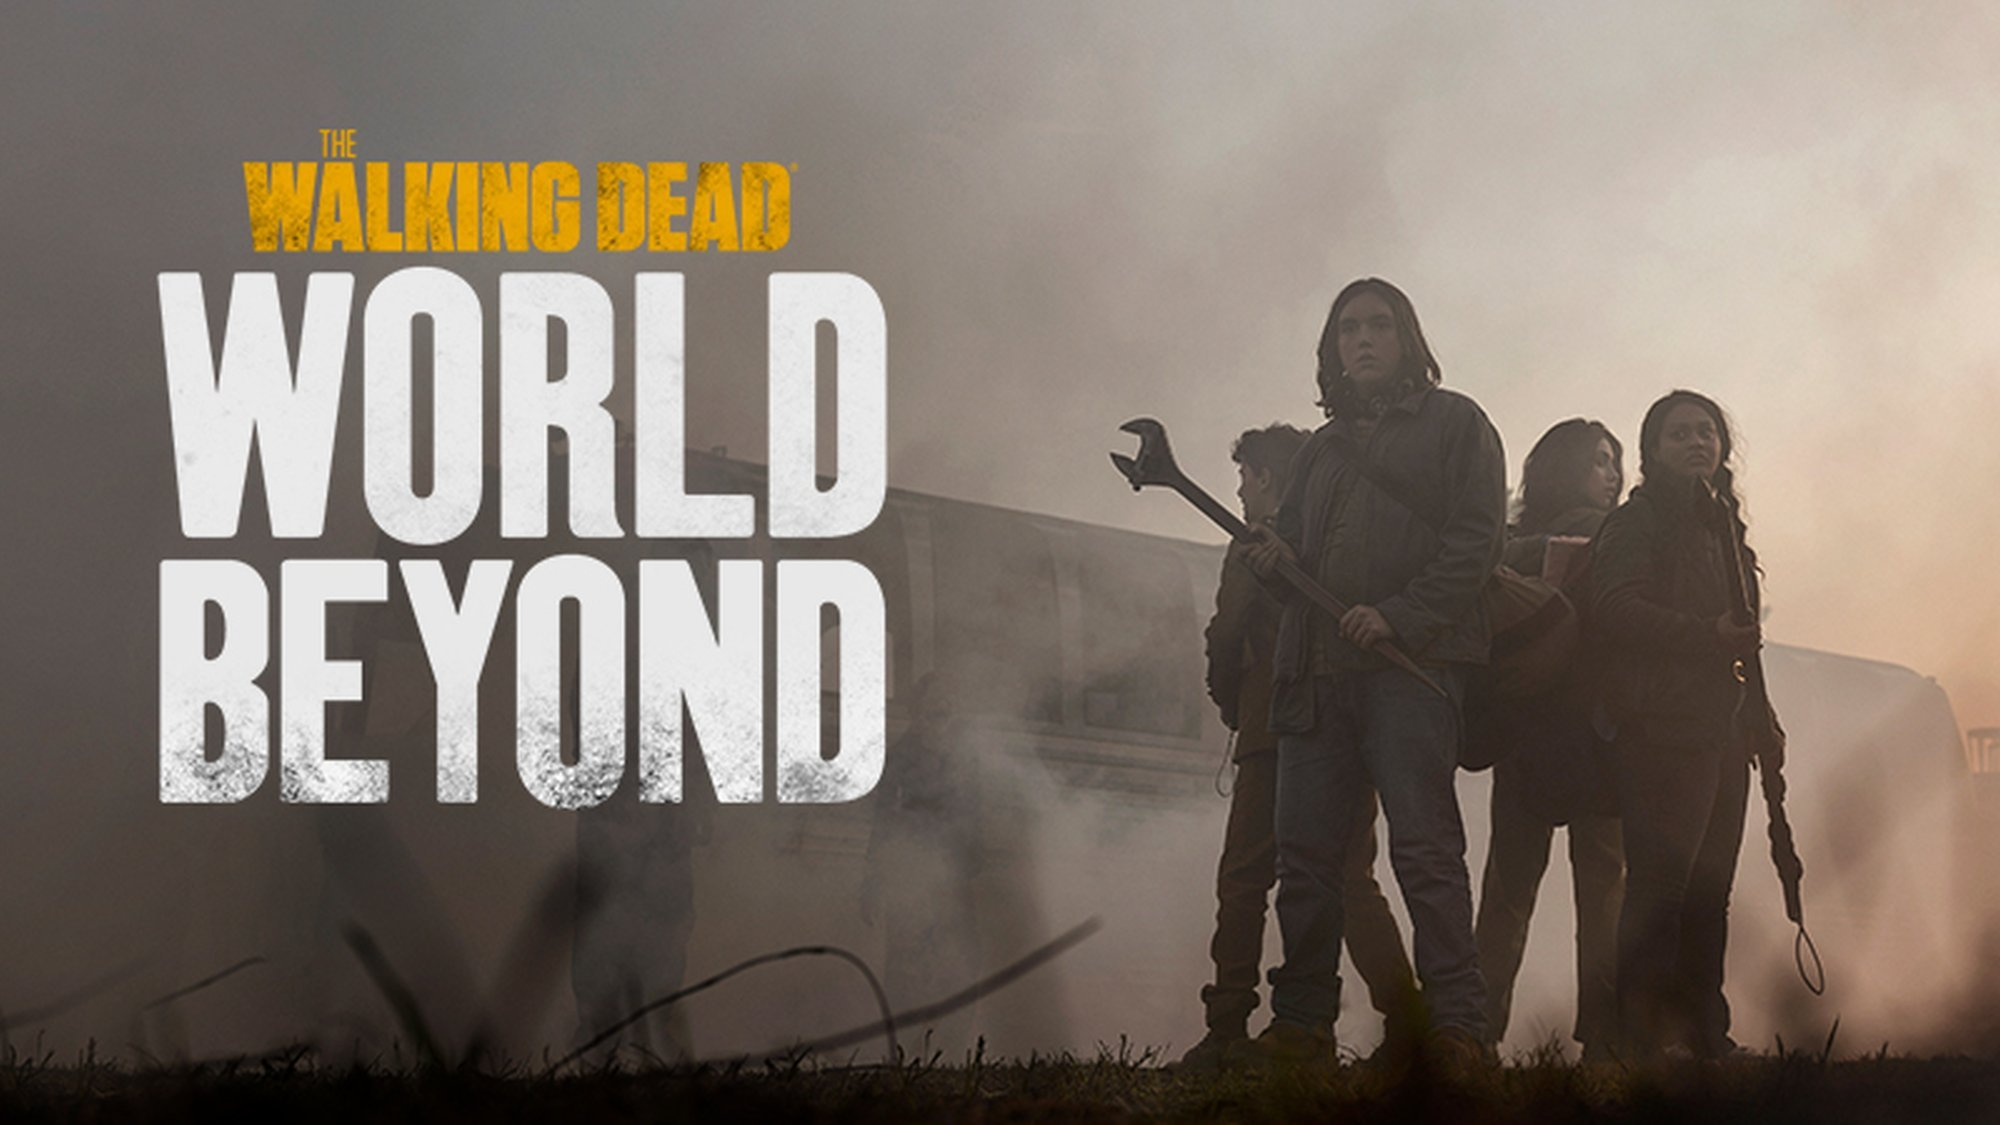 The Walking Dead: World Beyond - Exclusive Official Trailer Image'